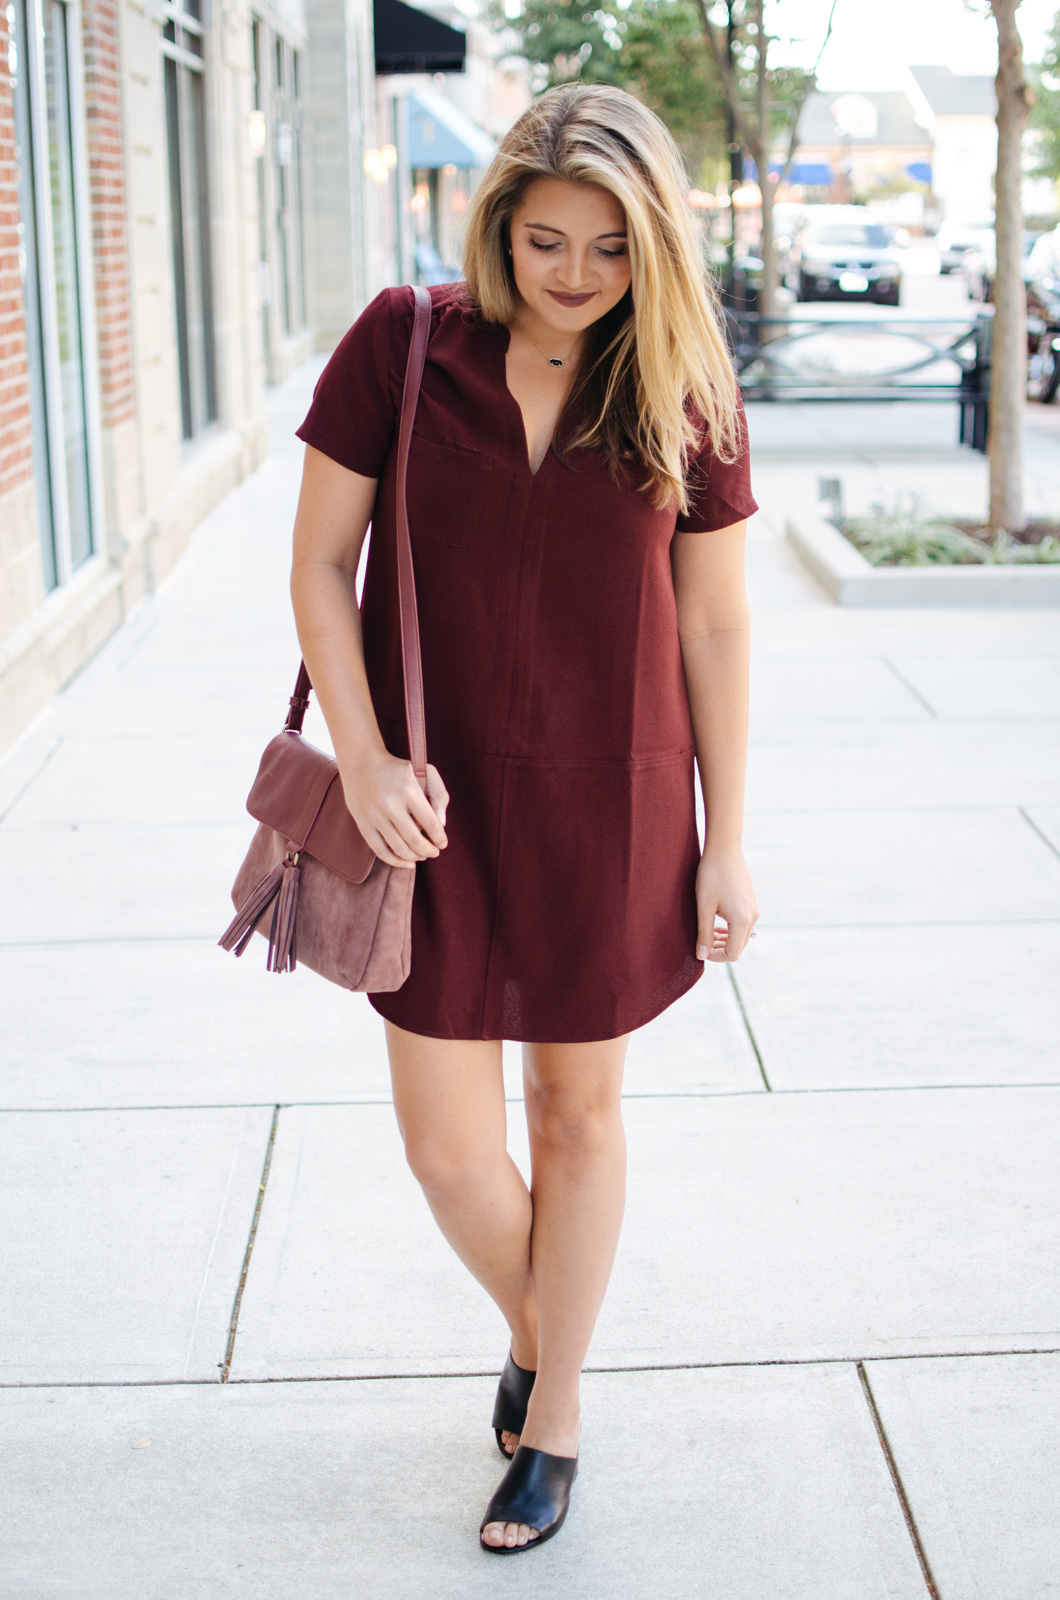 best Fall dress - Fall dress outfit | For more cute Fall transition outfits, click through to bylaurenm.com!